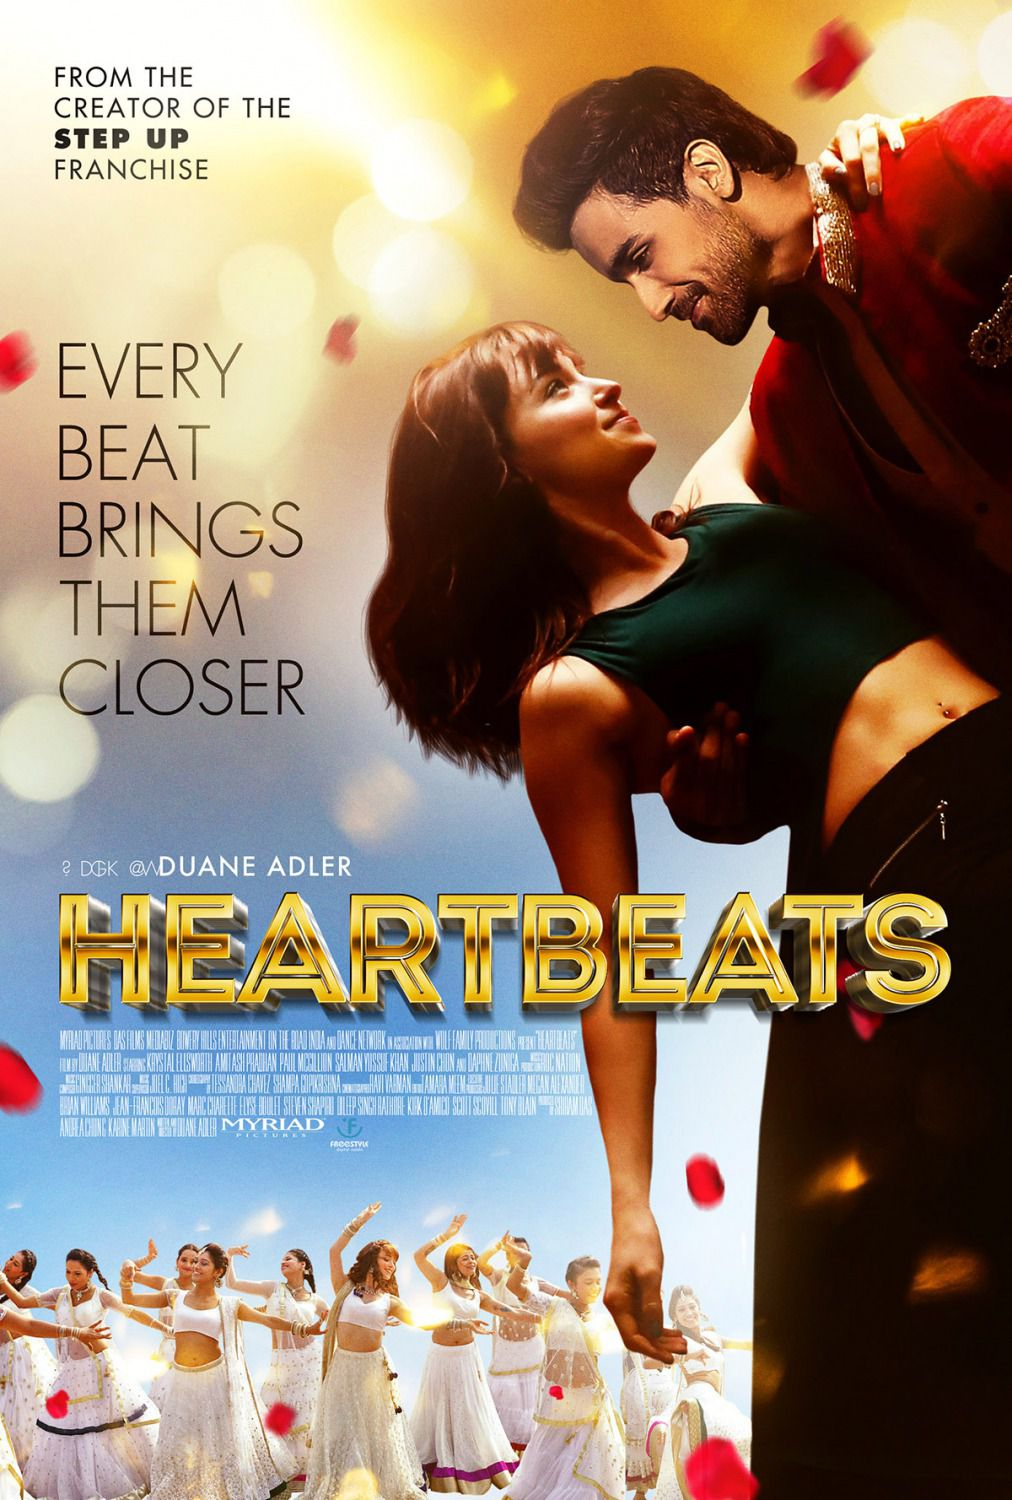 Heartbeats - Every beat brings them closer - dance film poster